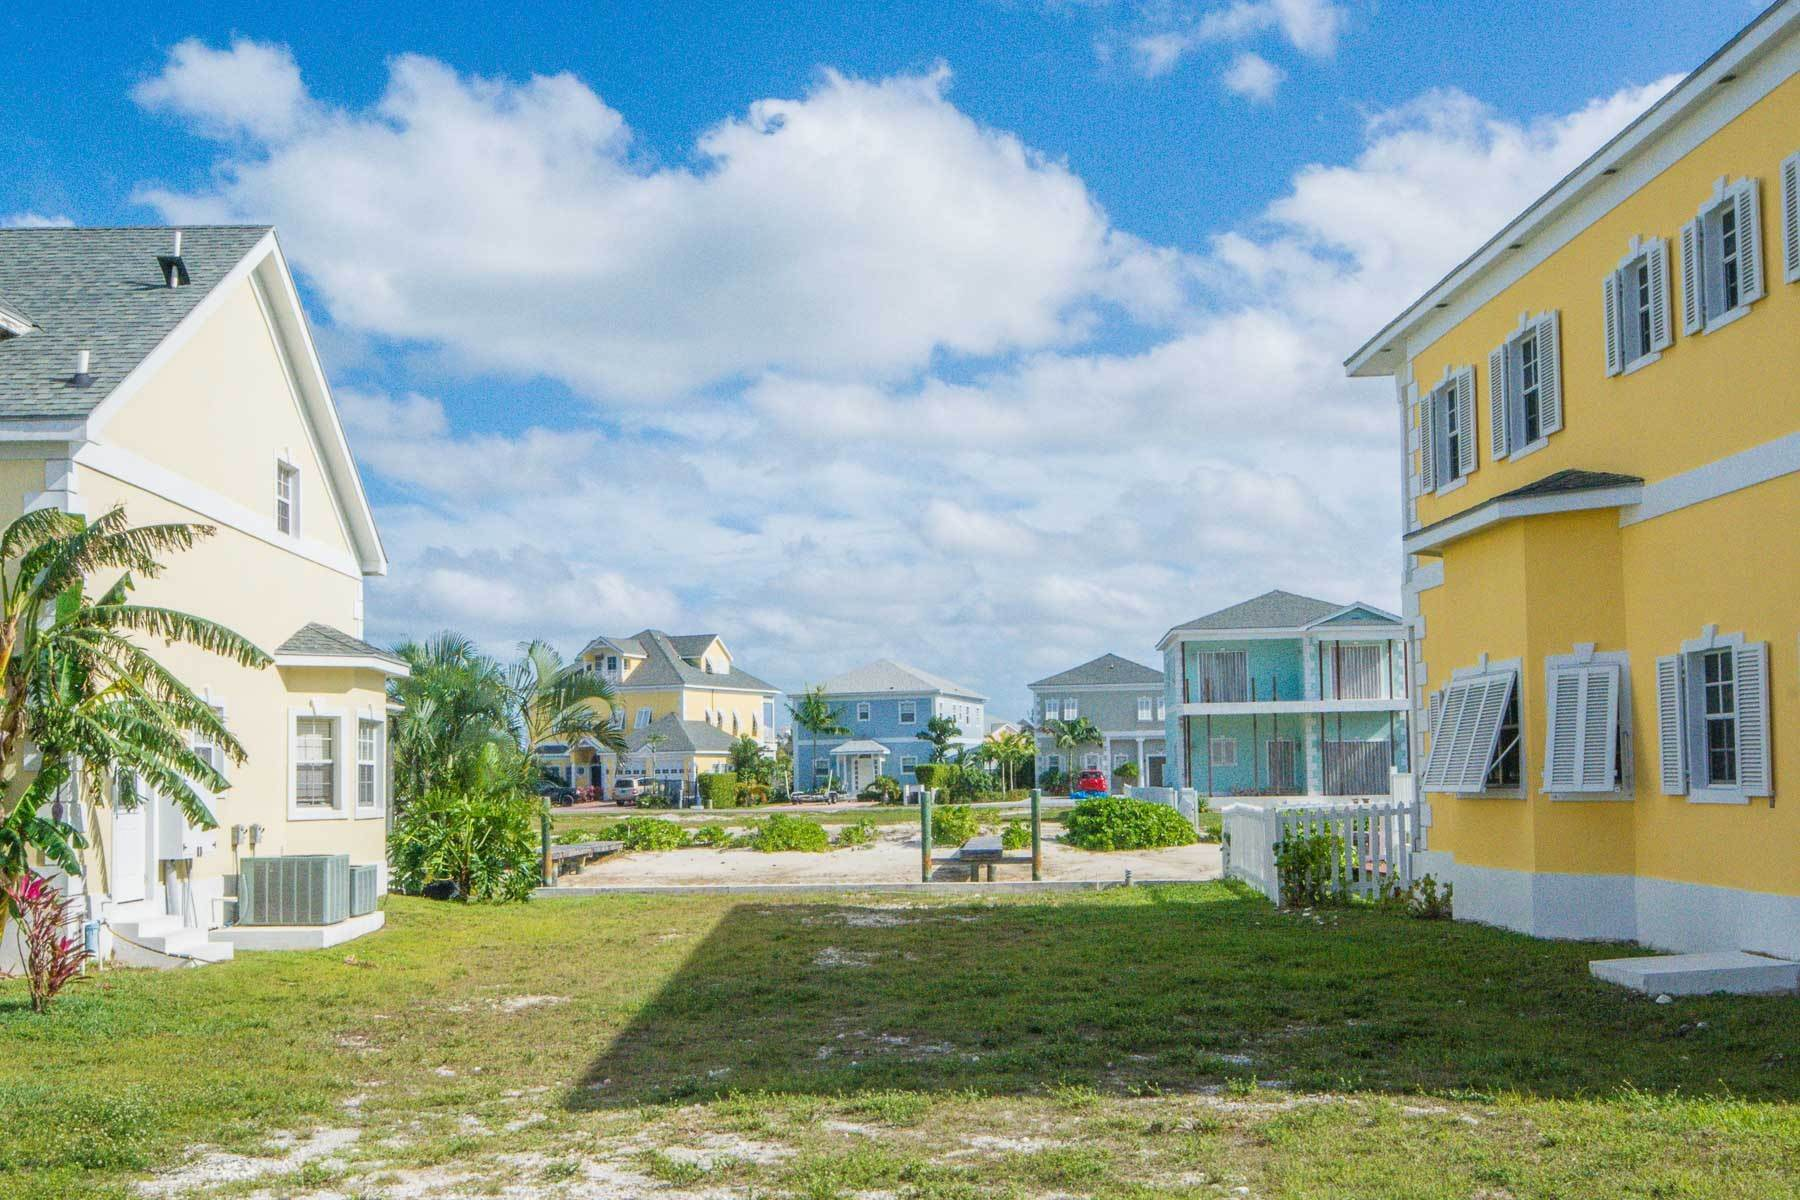 Land for Sale at Vacant Canalfront Lot in Sandyport - MLS 43224 Sandyport, Cable Beach, Nassau And Paradise Island Bahamas